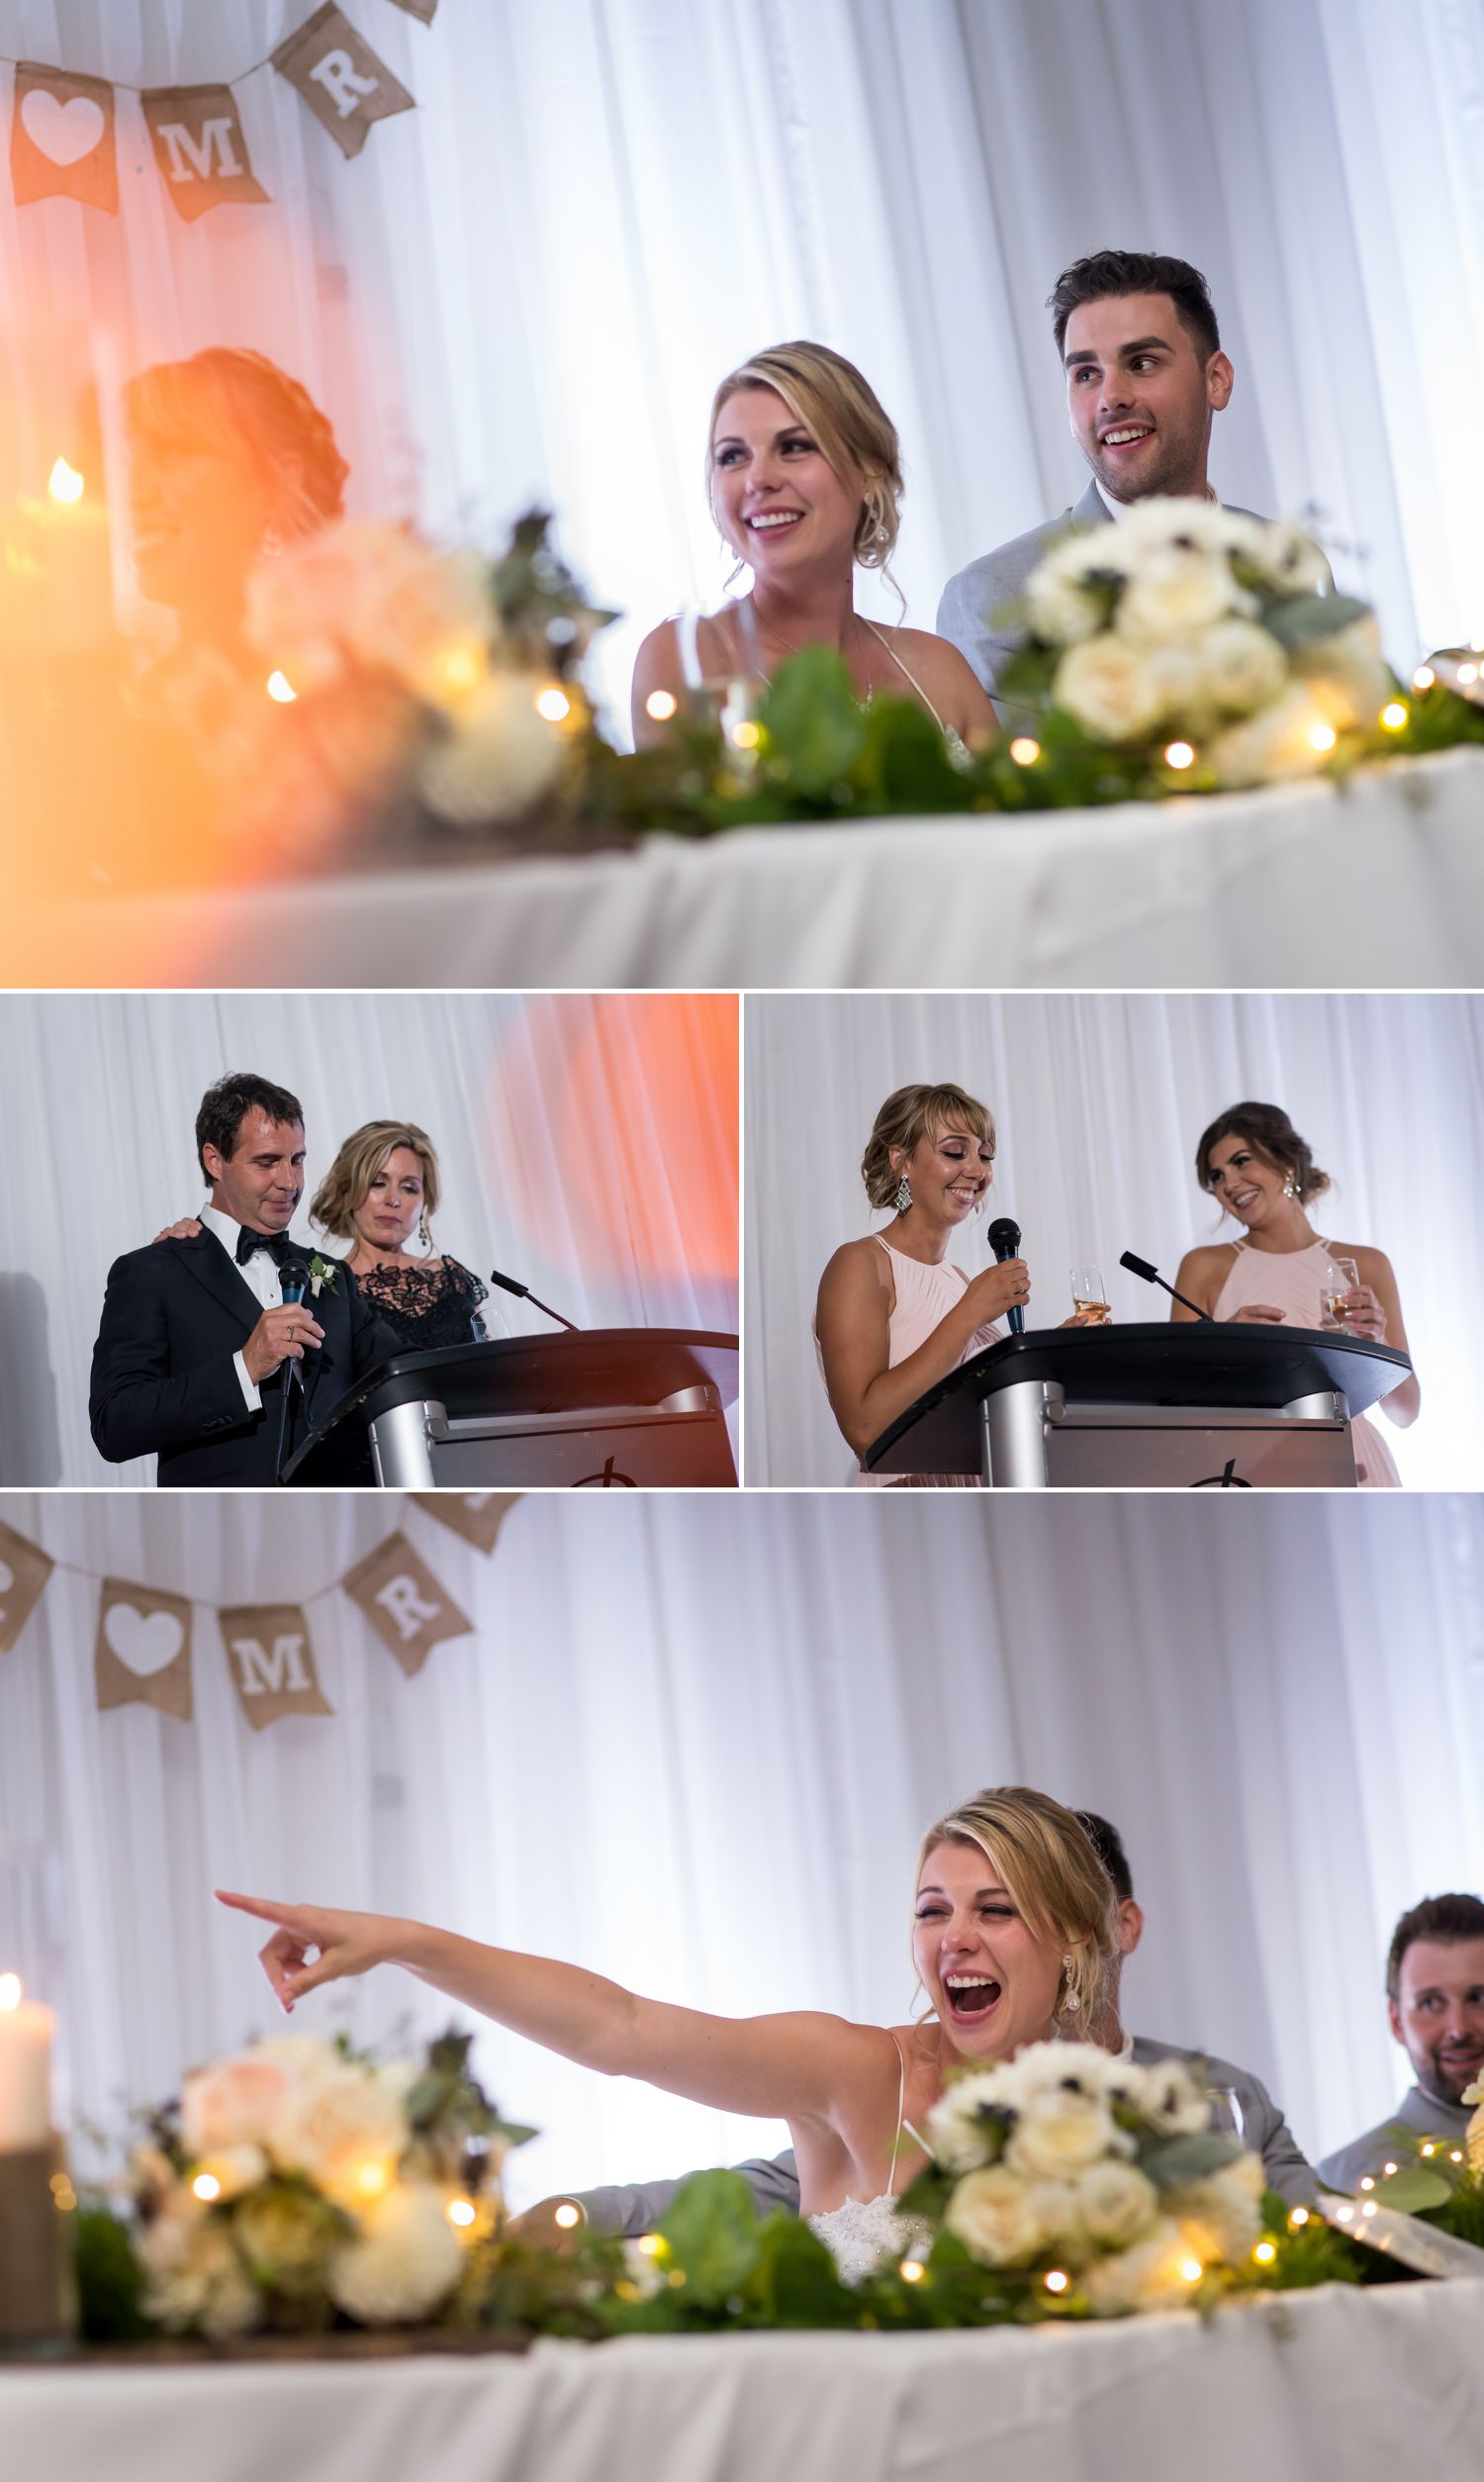 The bride and groom enjoying speeches during their wedding reception at The Delta Hotel in downtown Ottawa.